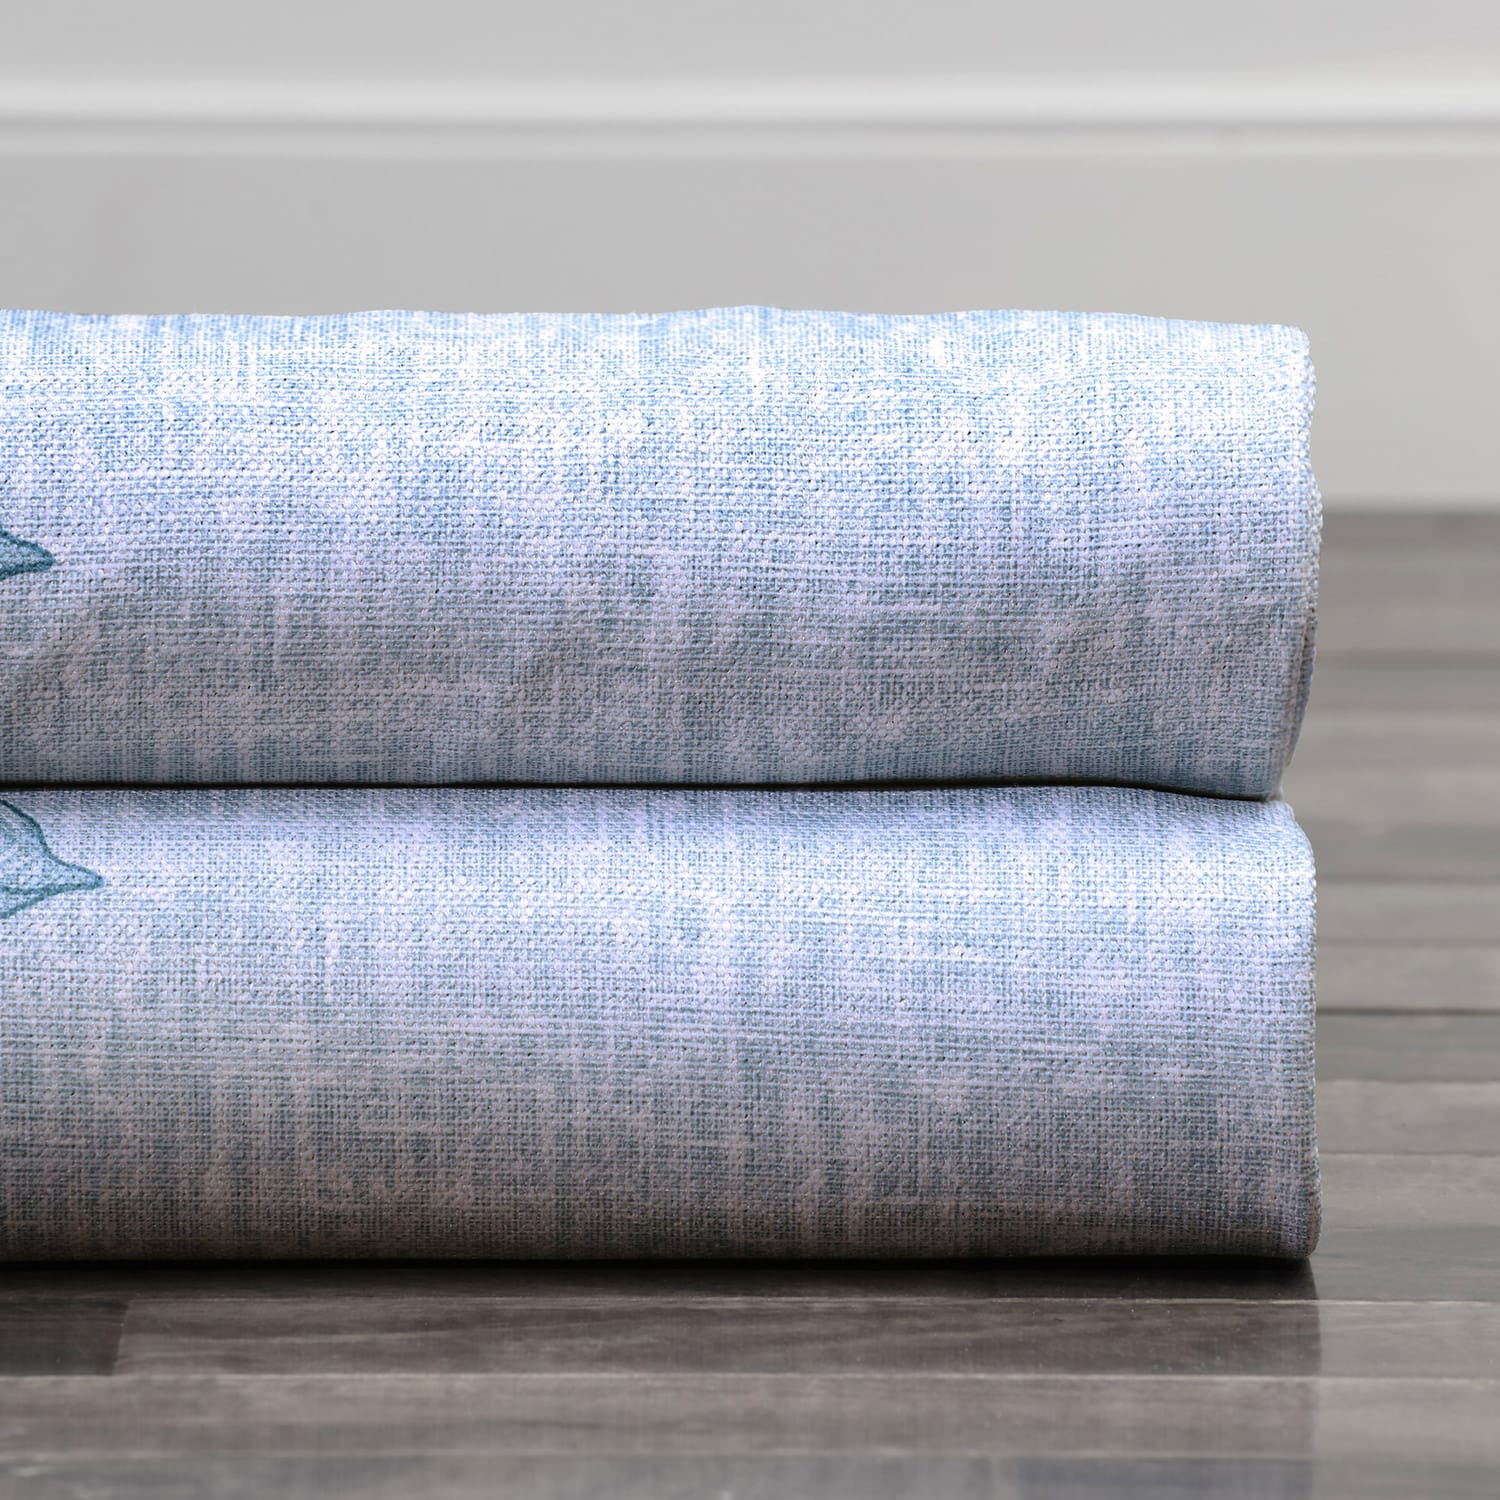 Copenhagen Blue Printed Linen Textured Blackout Swatch